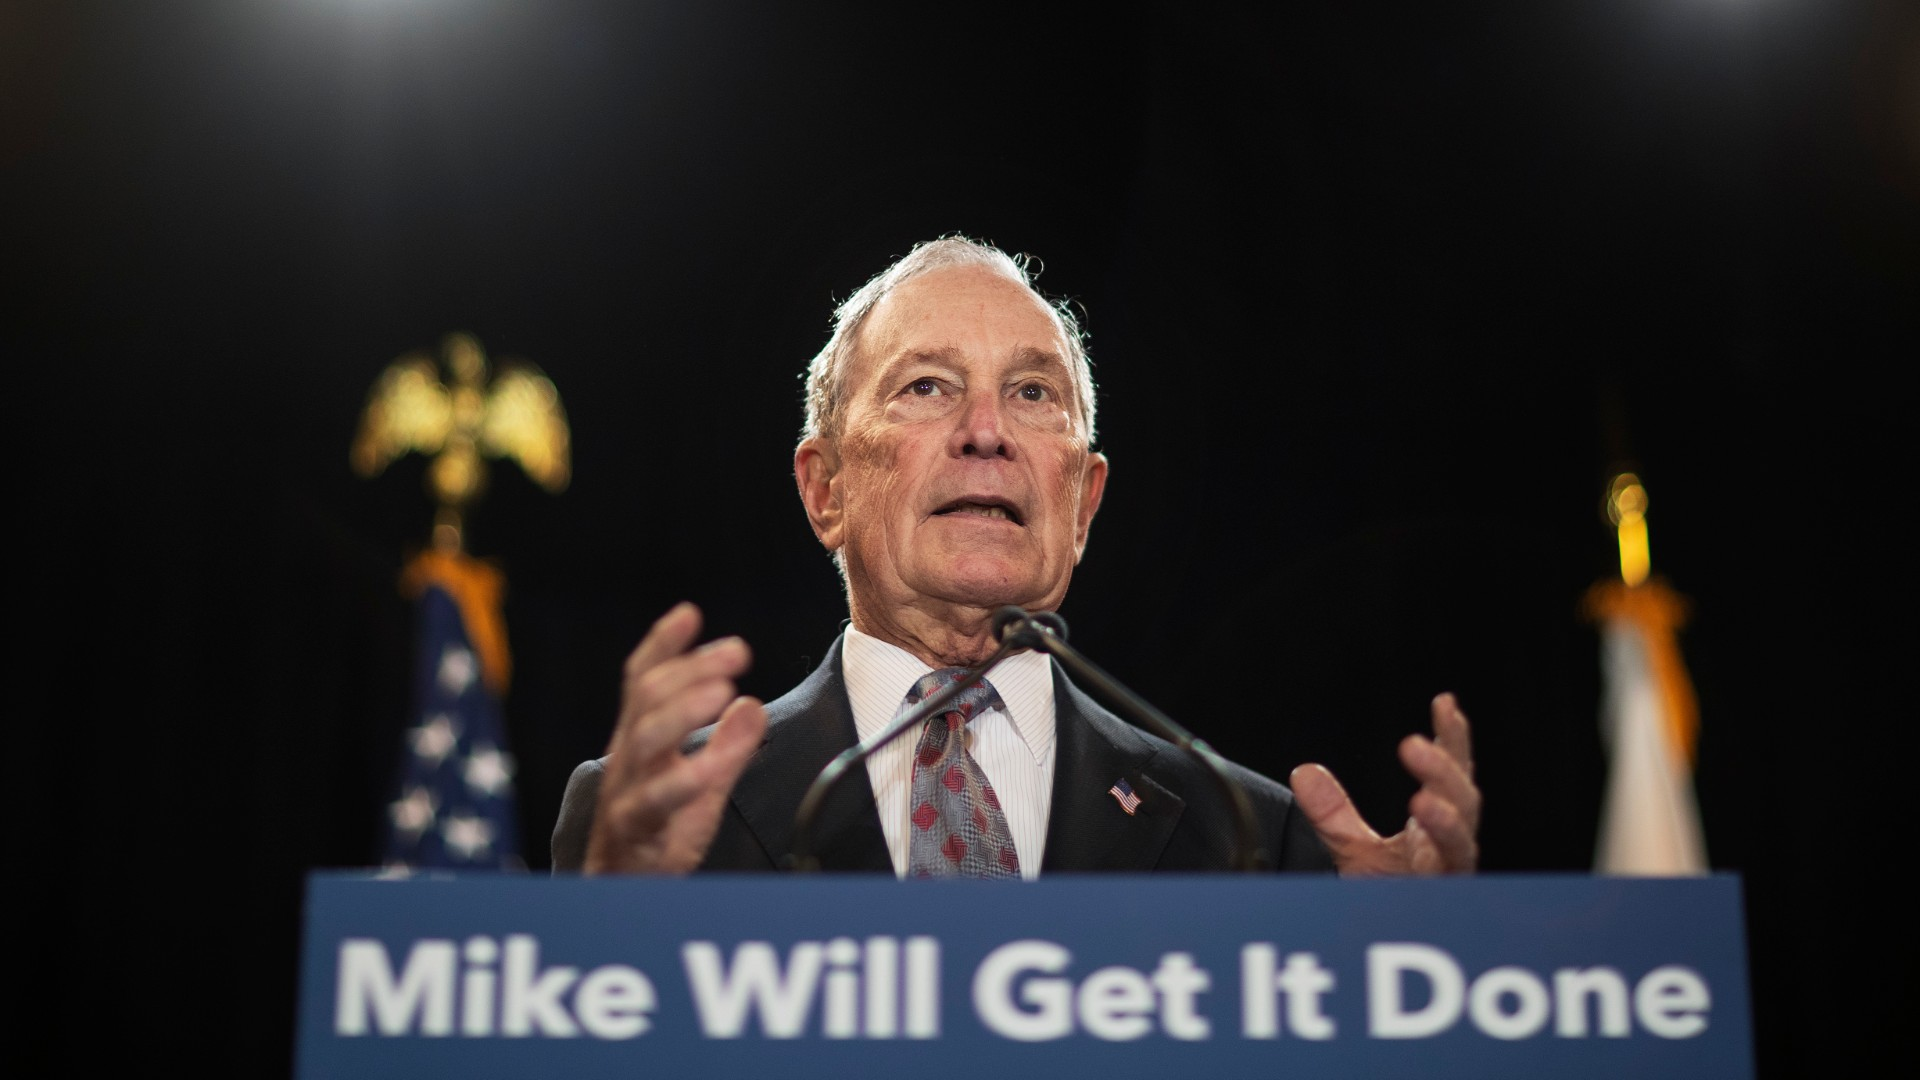 """In this Feb. 5, 2020, file photo, then-Democratic presidential candidate and former New York City Mayor Michael Bloomberg speaks at a campaign event in Providence, R.I. Bloomberg has come through on his vow to spend """"whatever it takes"""" to defeat President Donald Trump. (AP Photo/David Goldman, File)"""